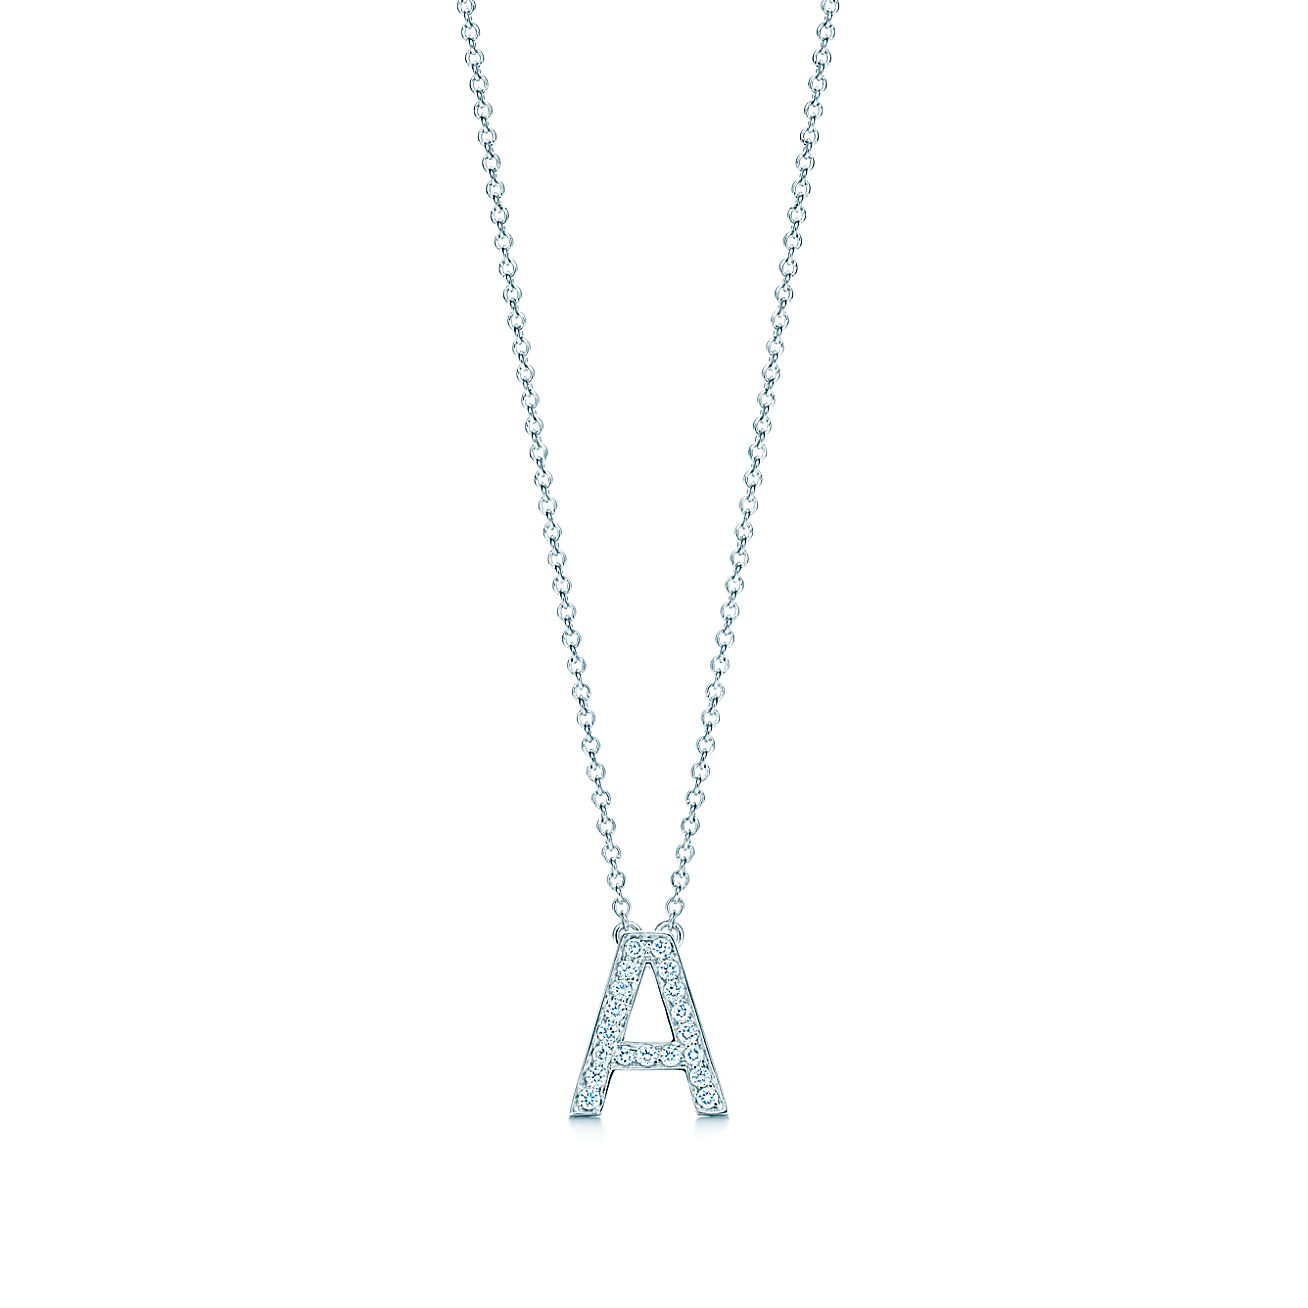 Tiffany letters pendant of diamonds in platinum mini letters a z tiffany letters pendant of diamonds in platinum mini letters a z available tiffany co mozeypictures Gallery